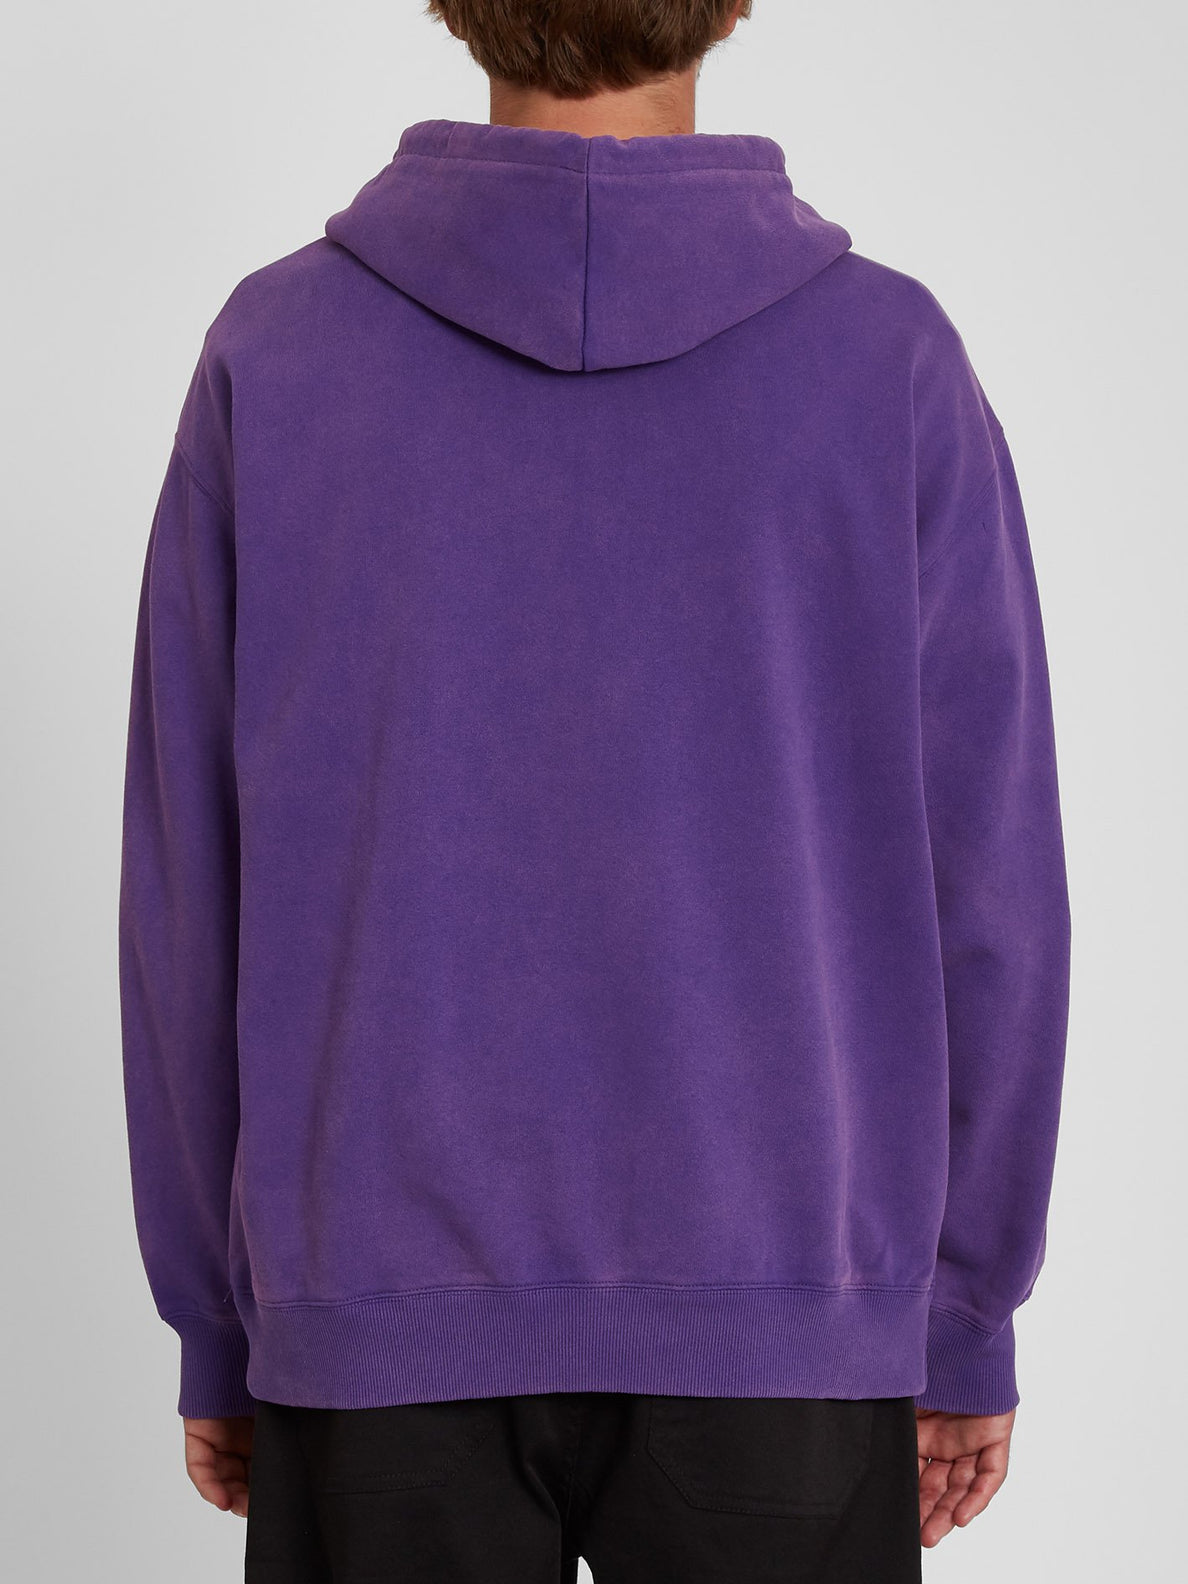 Something Out There Hoodie - PRISM VIOLET (A4142004_PRV) [B]